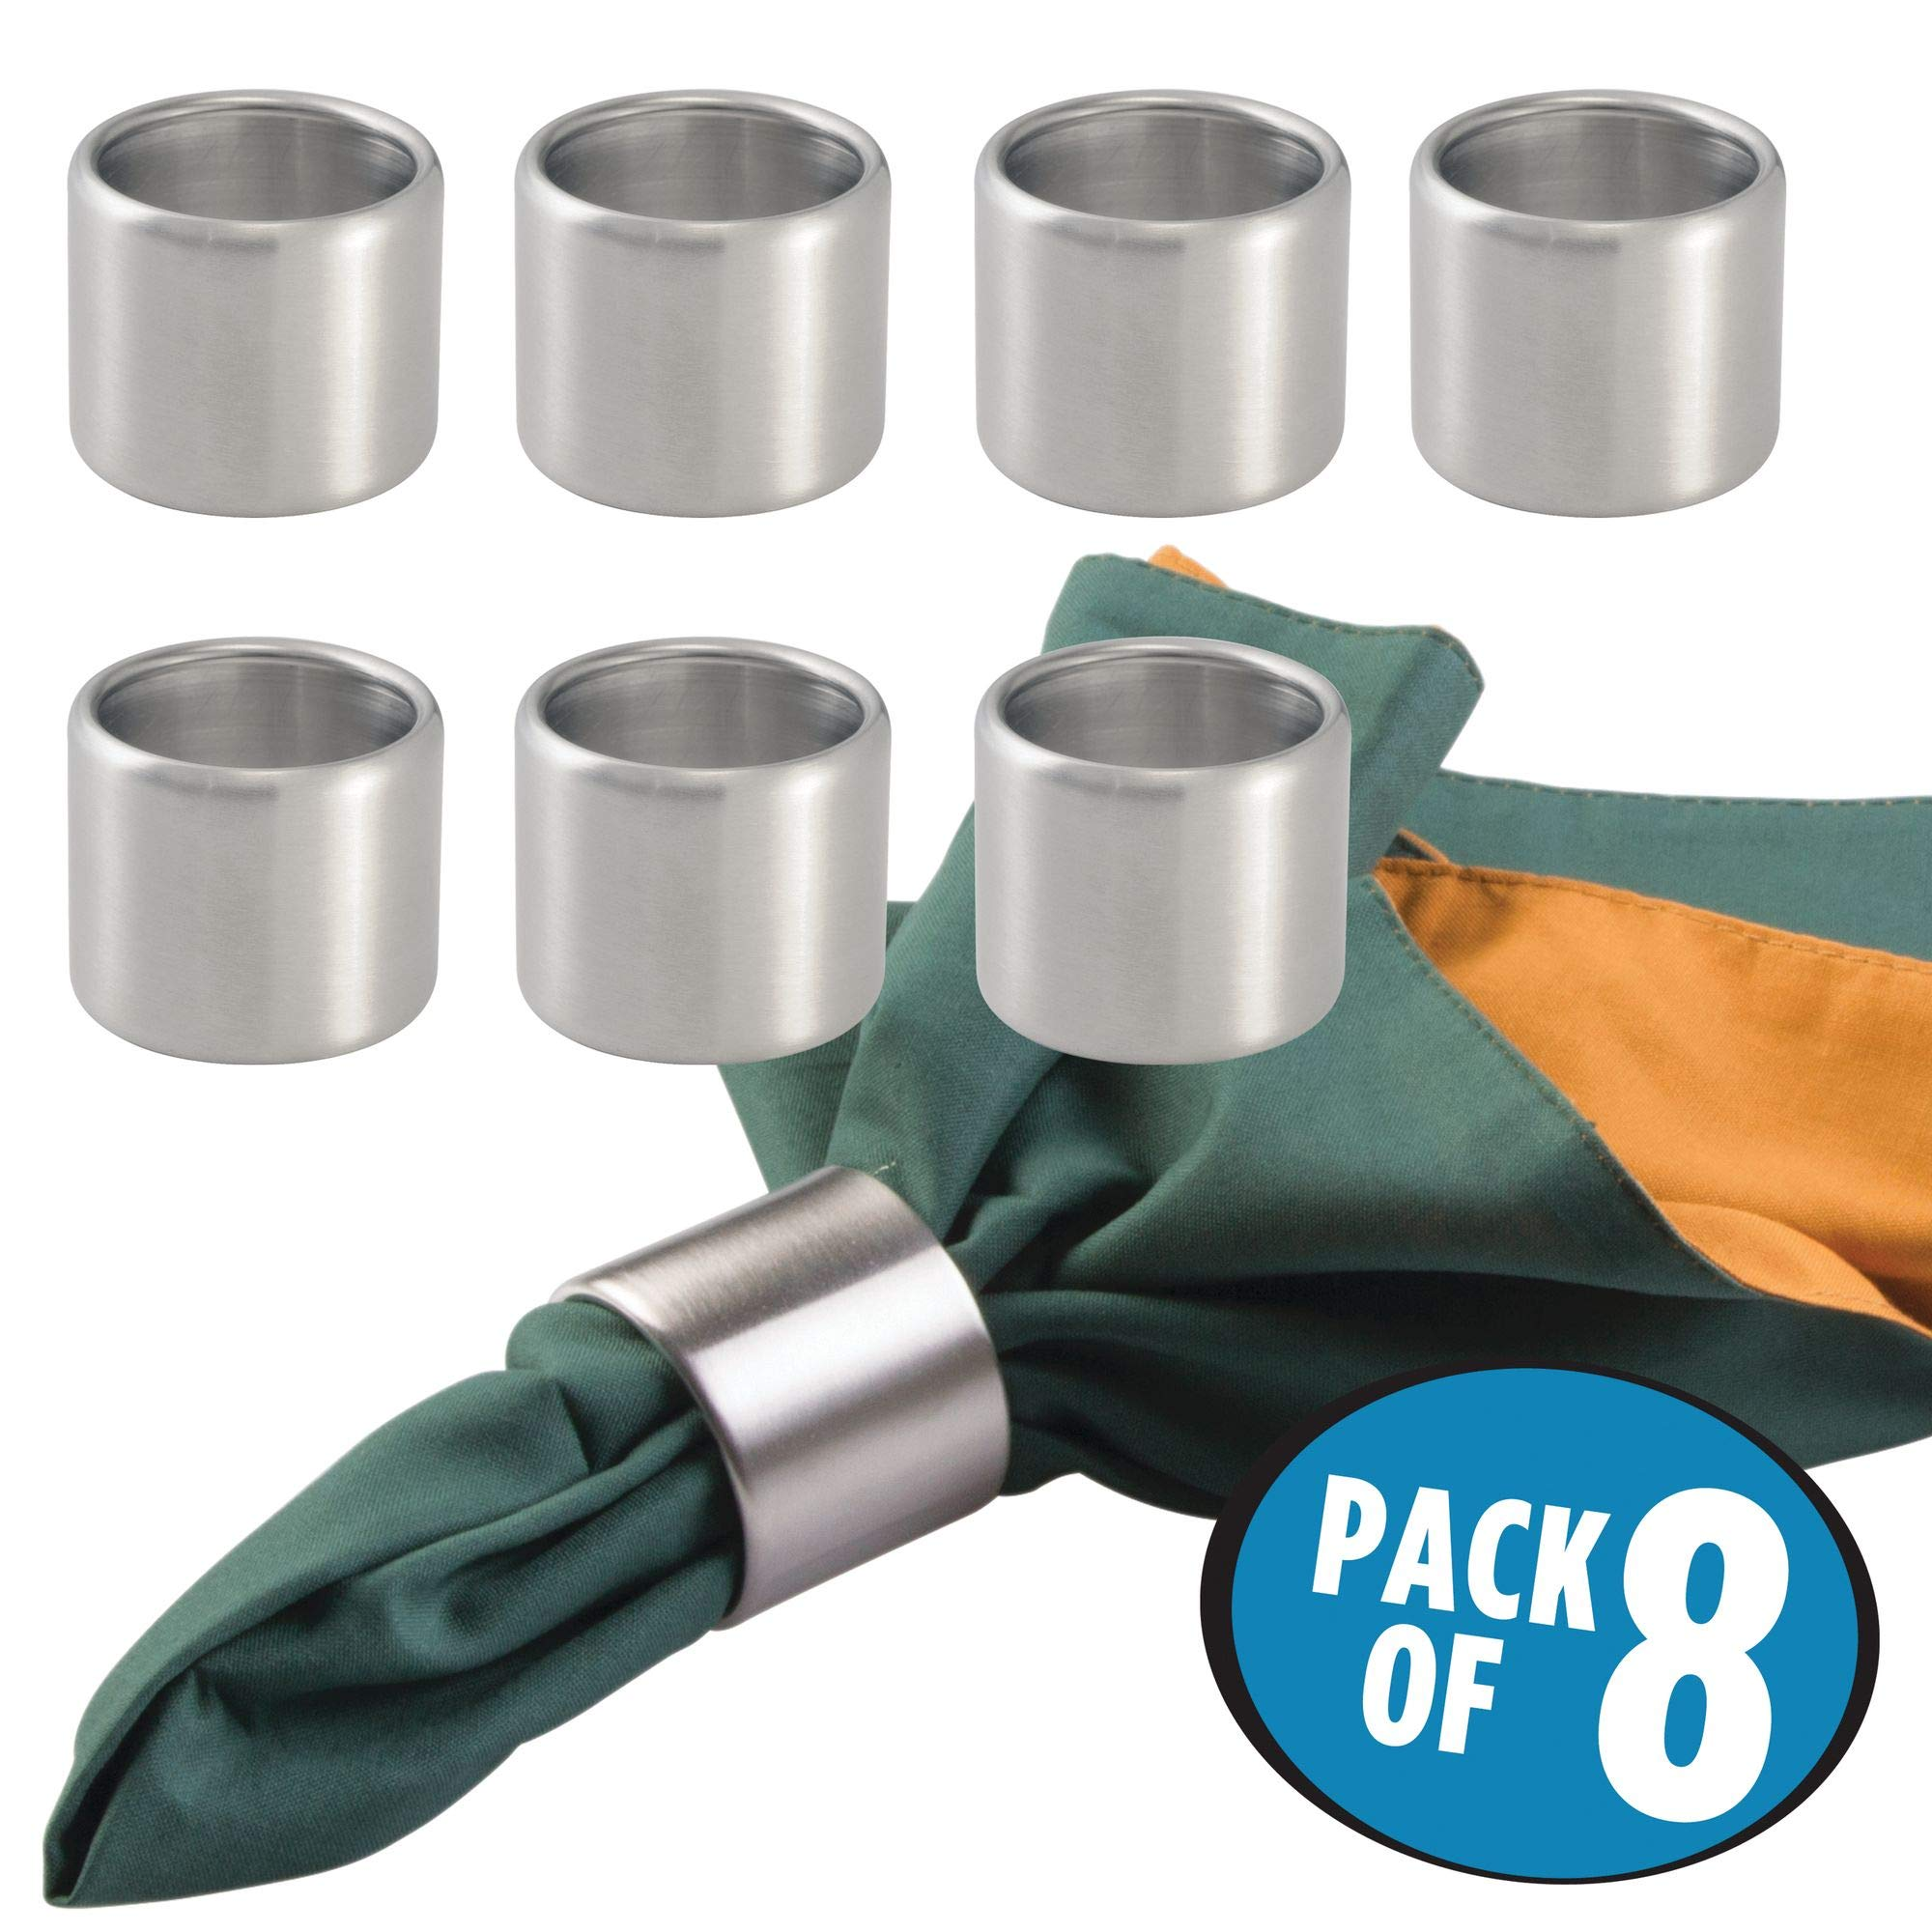 mDesign Napkin Rings for Home, Kitchen, Dining Room - Pack of 8, Brushed Stainless Steel by mDesign (Image #2)